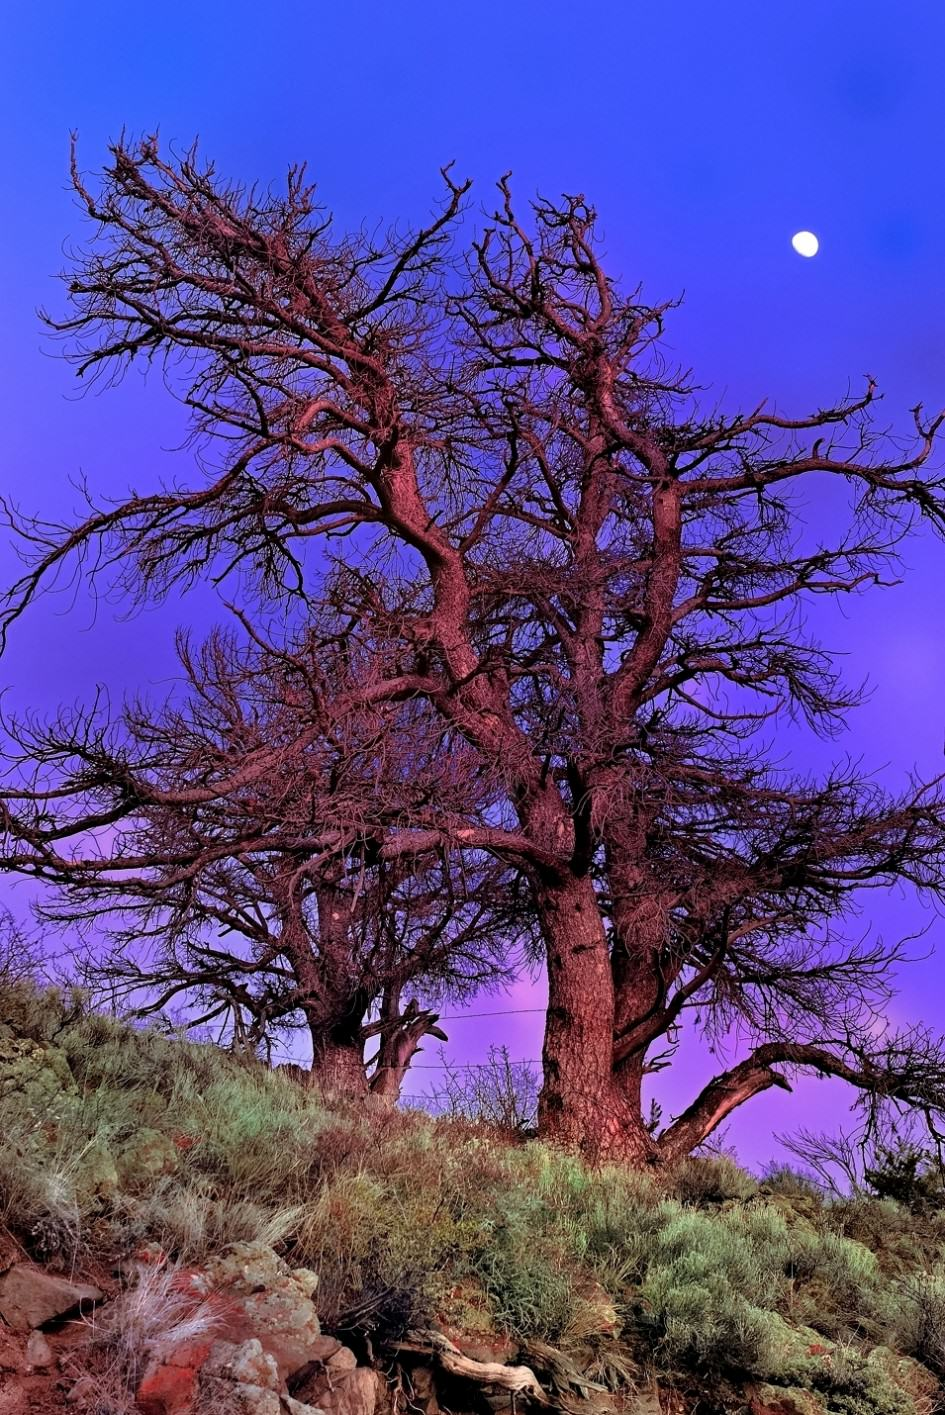 Magical Moonlight Over Lost Rocky Mountain Pine Image